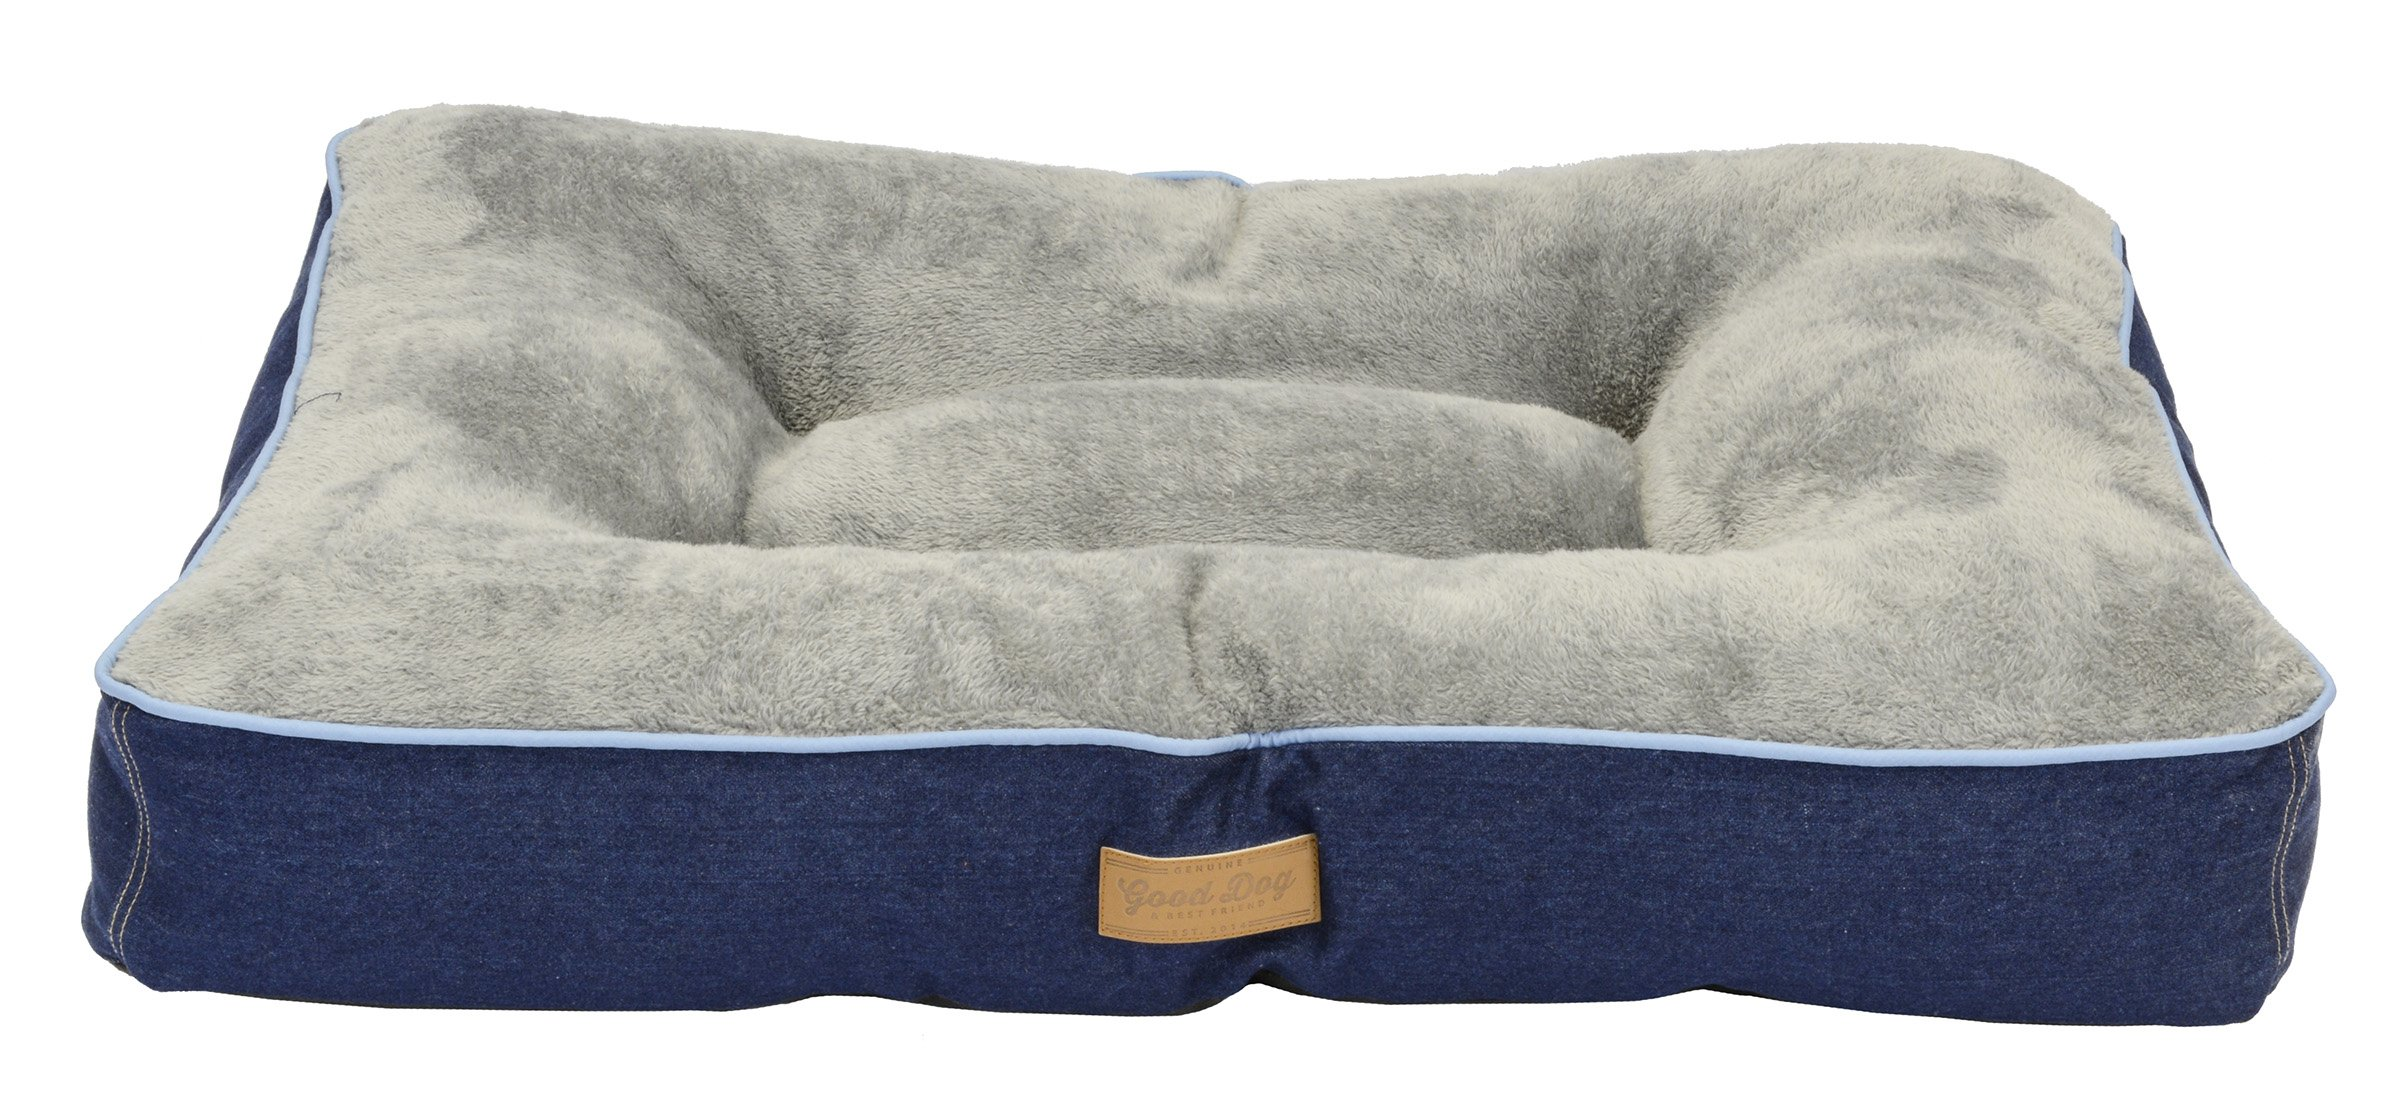 Dallas Manufacturing Co. 36'' x 26'' large Gusset Dog Bed, Denim with Blue Piping